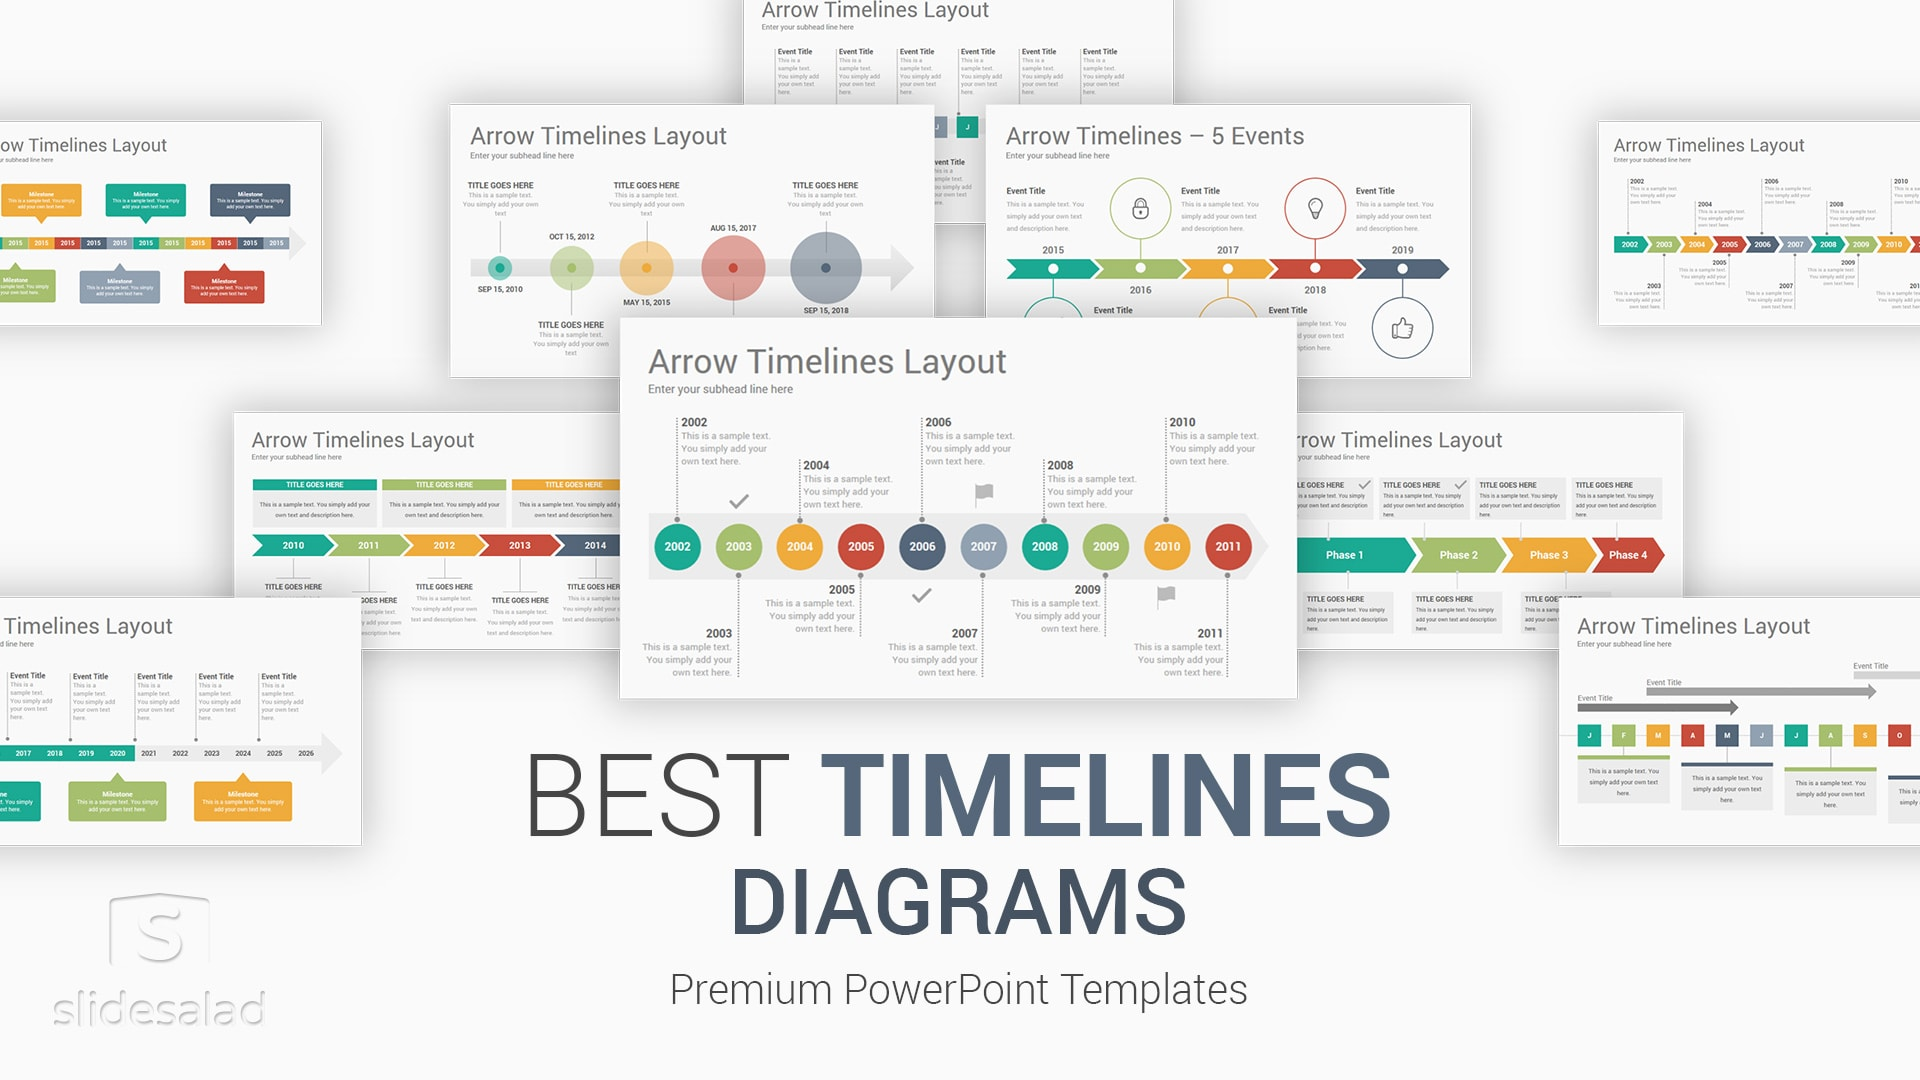 Best Timelines Diagrams PowerPoint Presentation Template For Marketing Plan – Top Creative Business Planning PPT Template